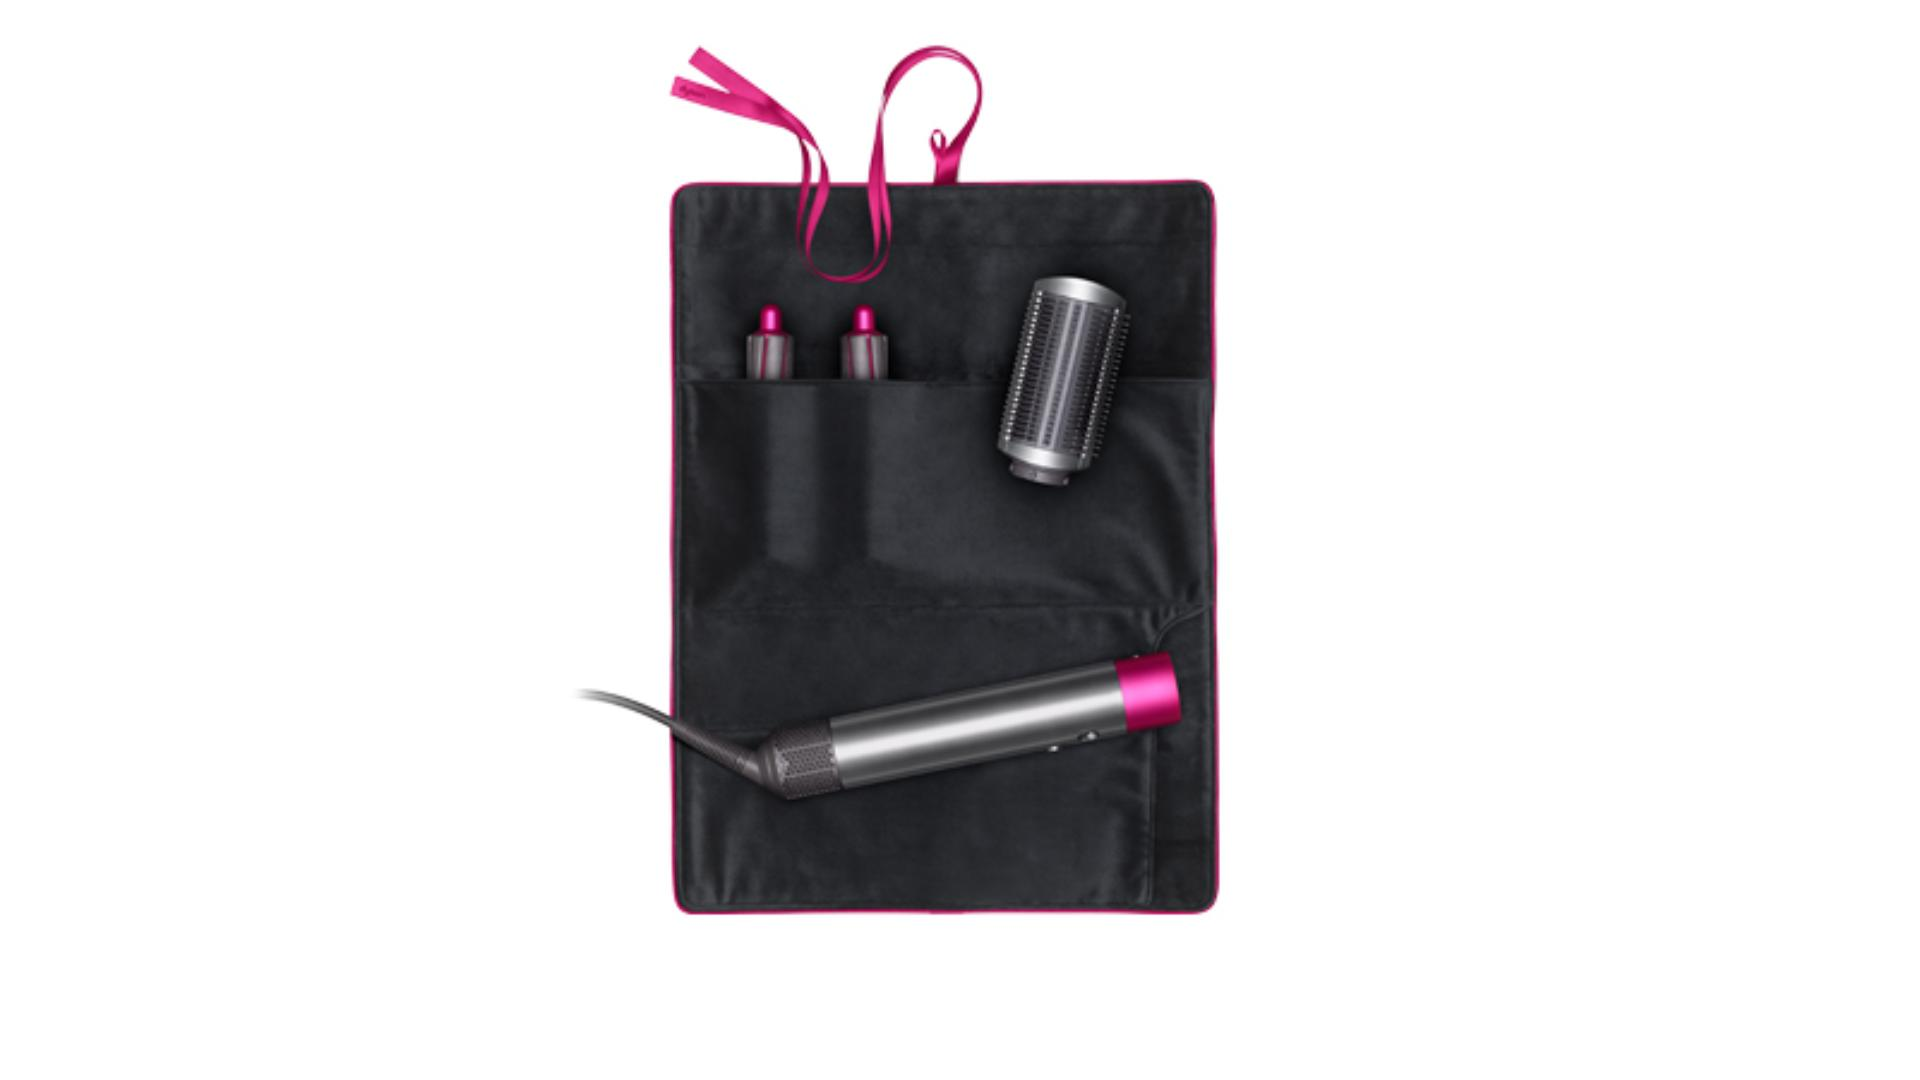 Black and fuchsia Airwrap travel pouch